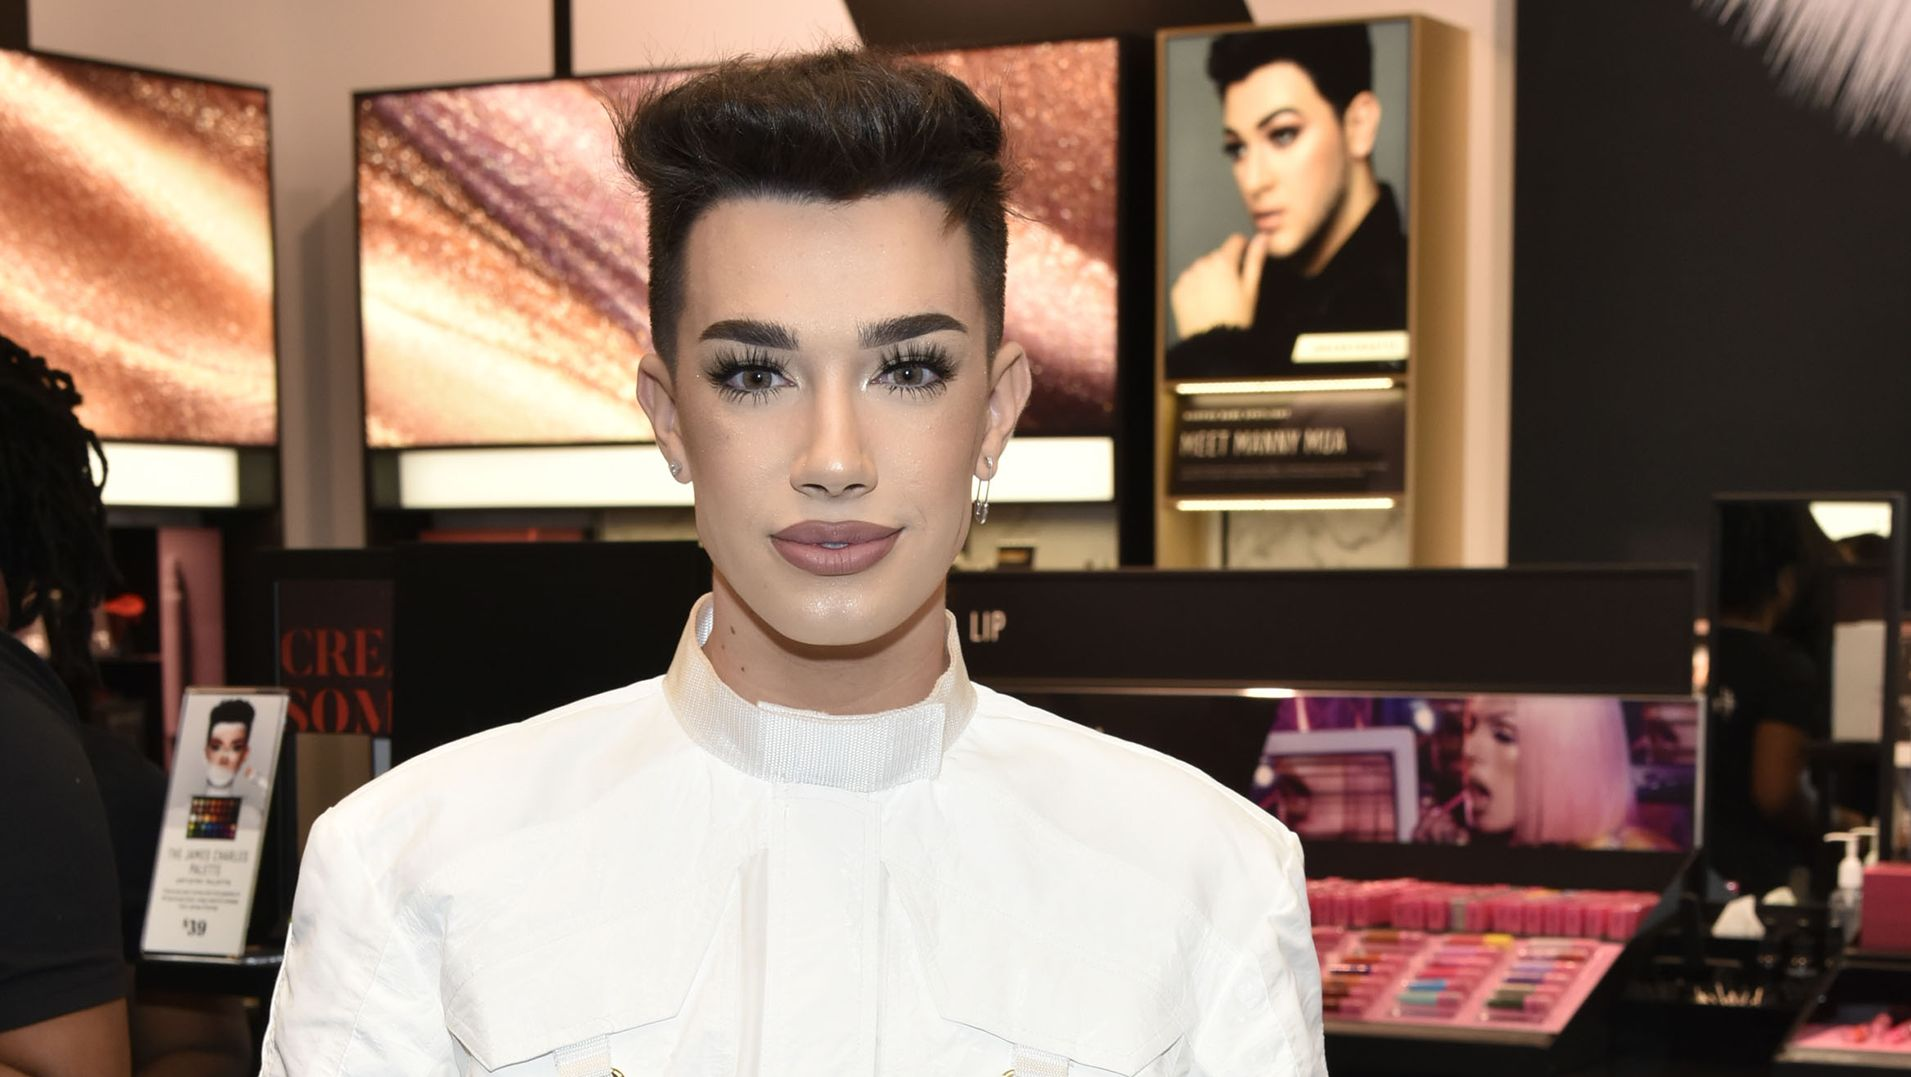 YouTuber James Charles loses over 2 million subscribers amid controversy